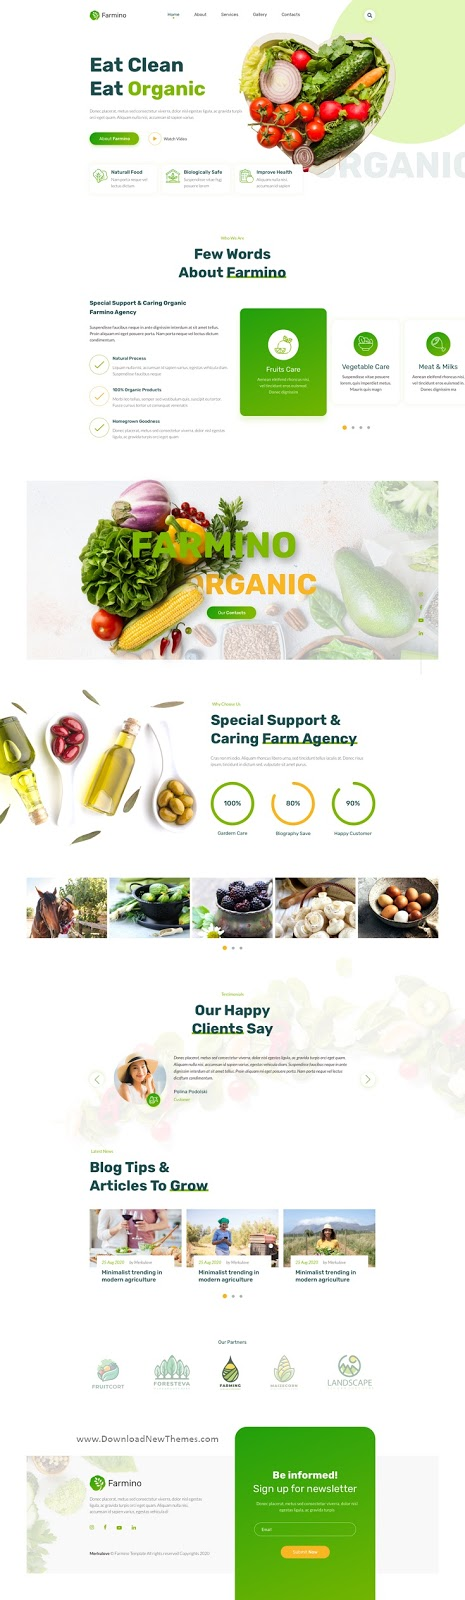 Best Organic Food Template for Sketch